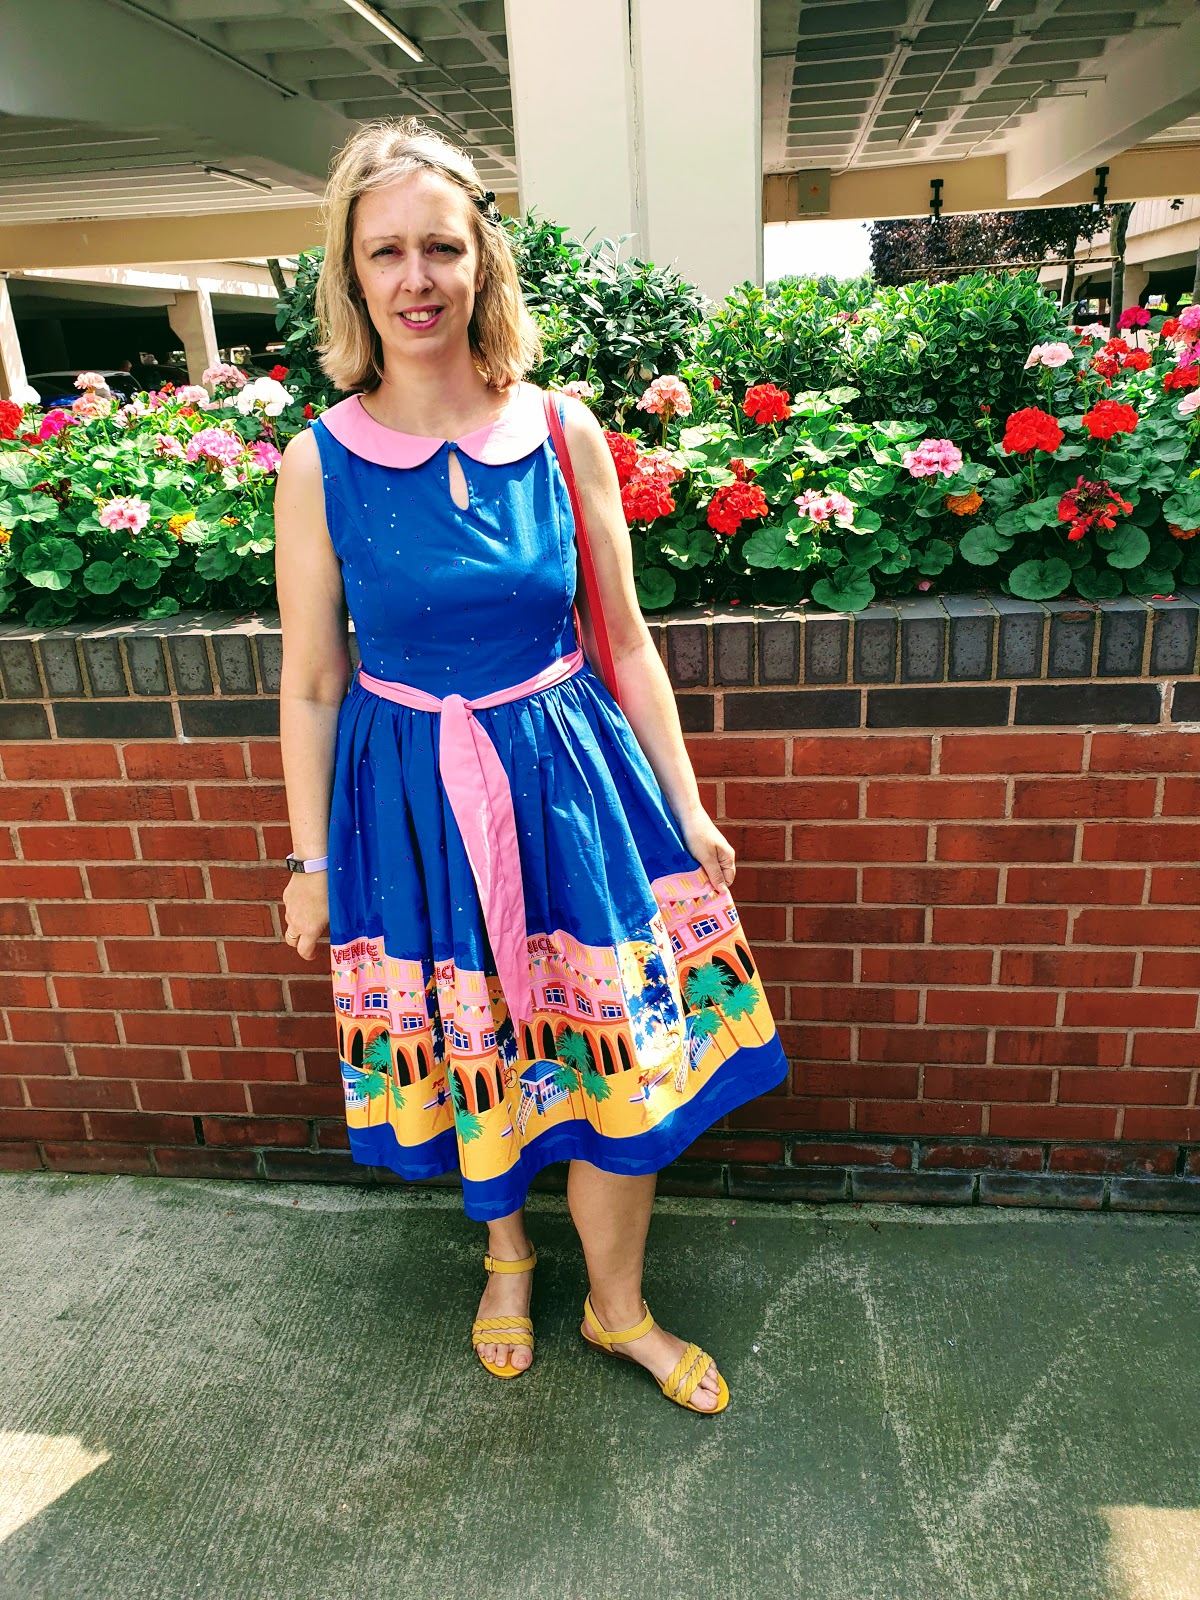 Venice Beach Swing Dress: Over 40 Style Blog